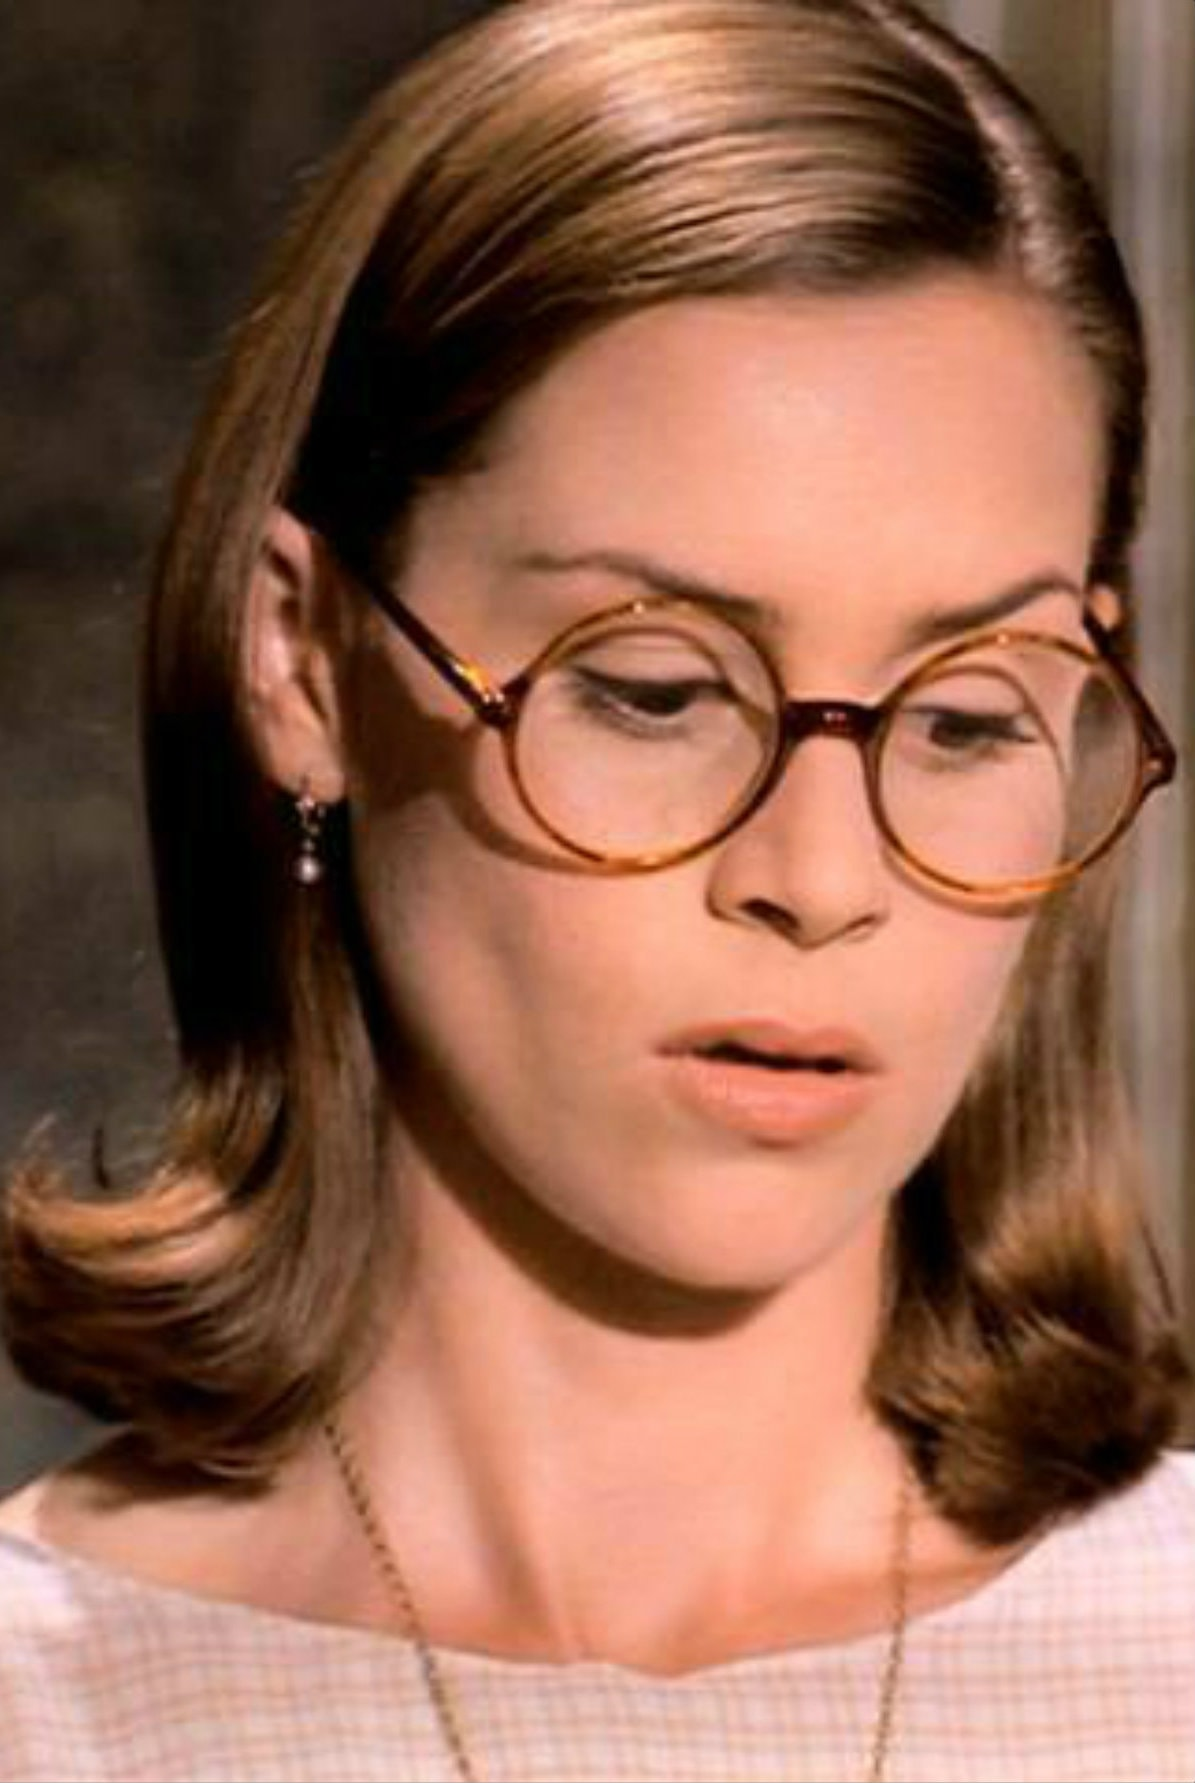 Embeth Davidtz Download